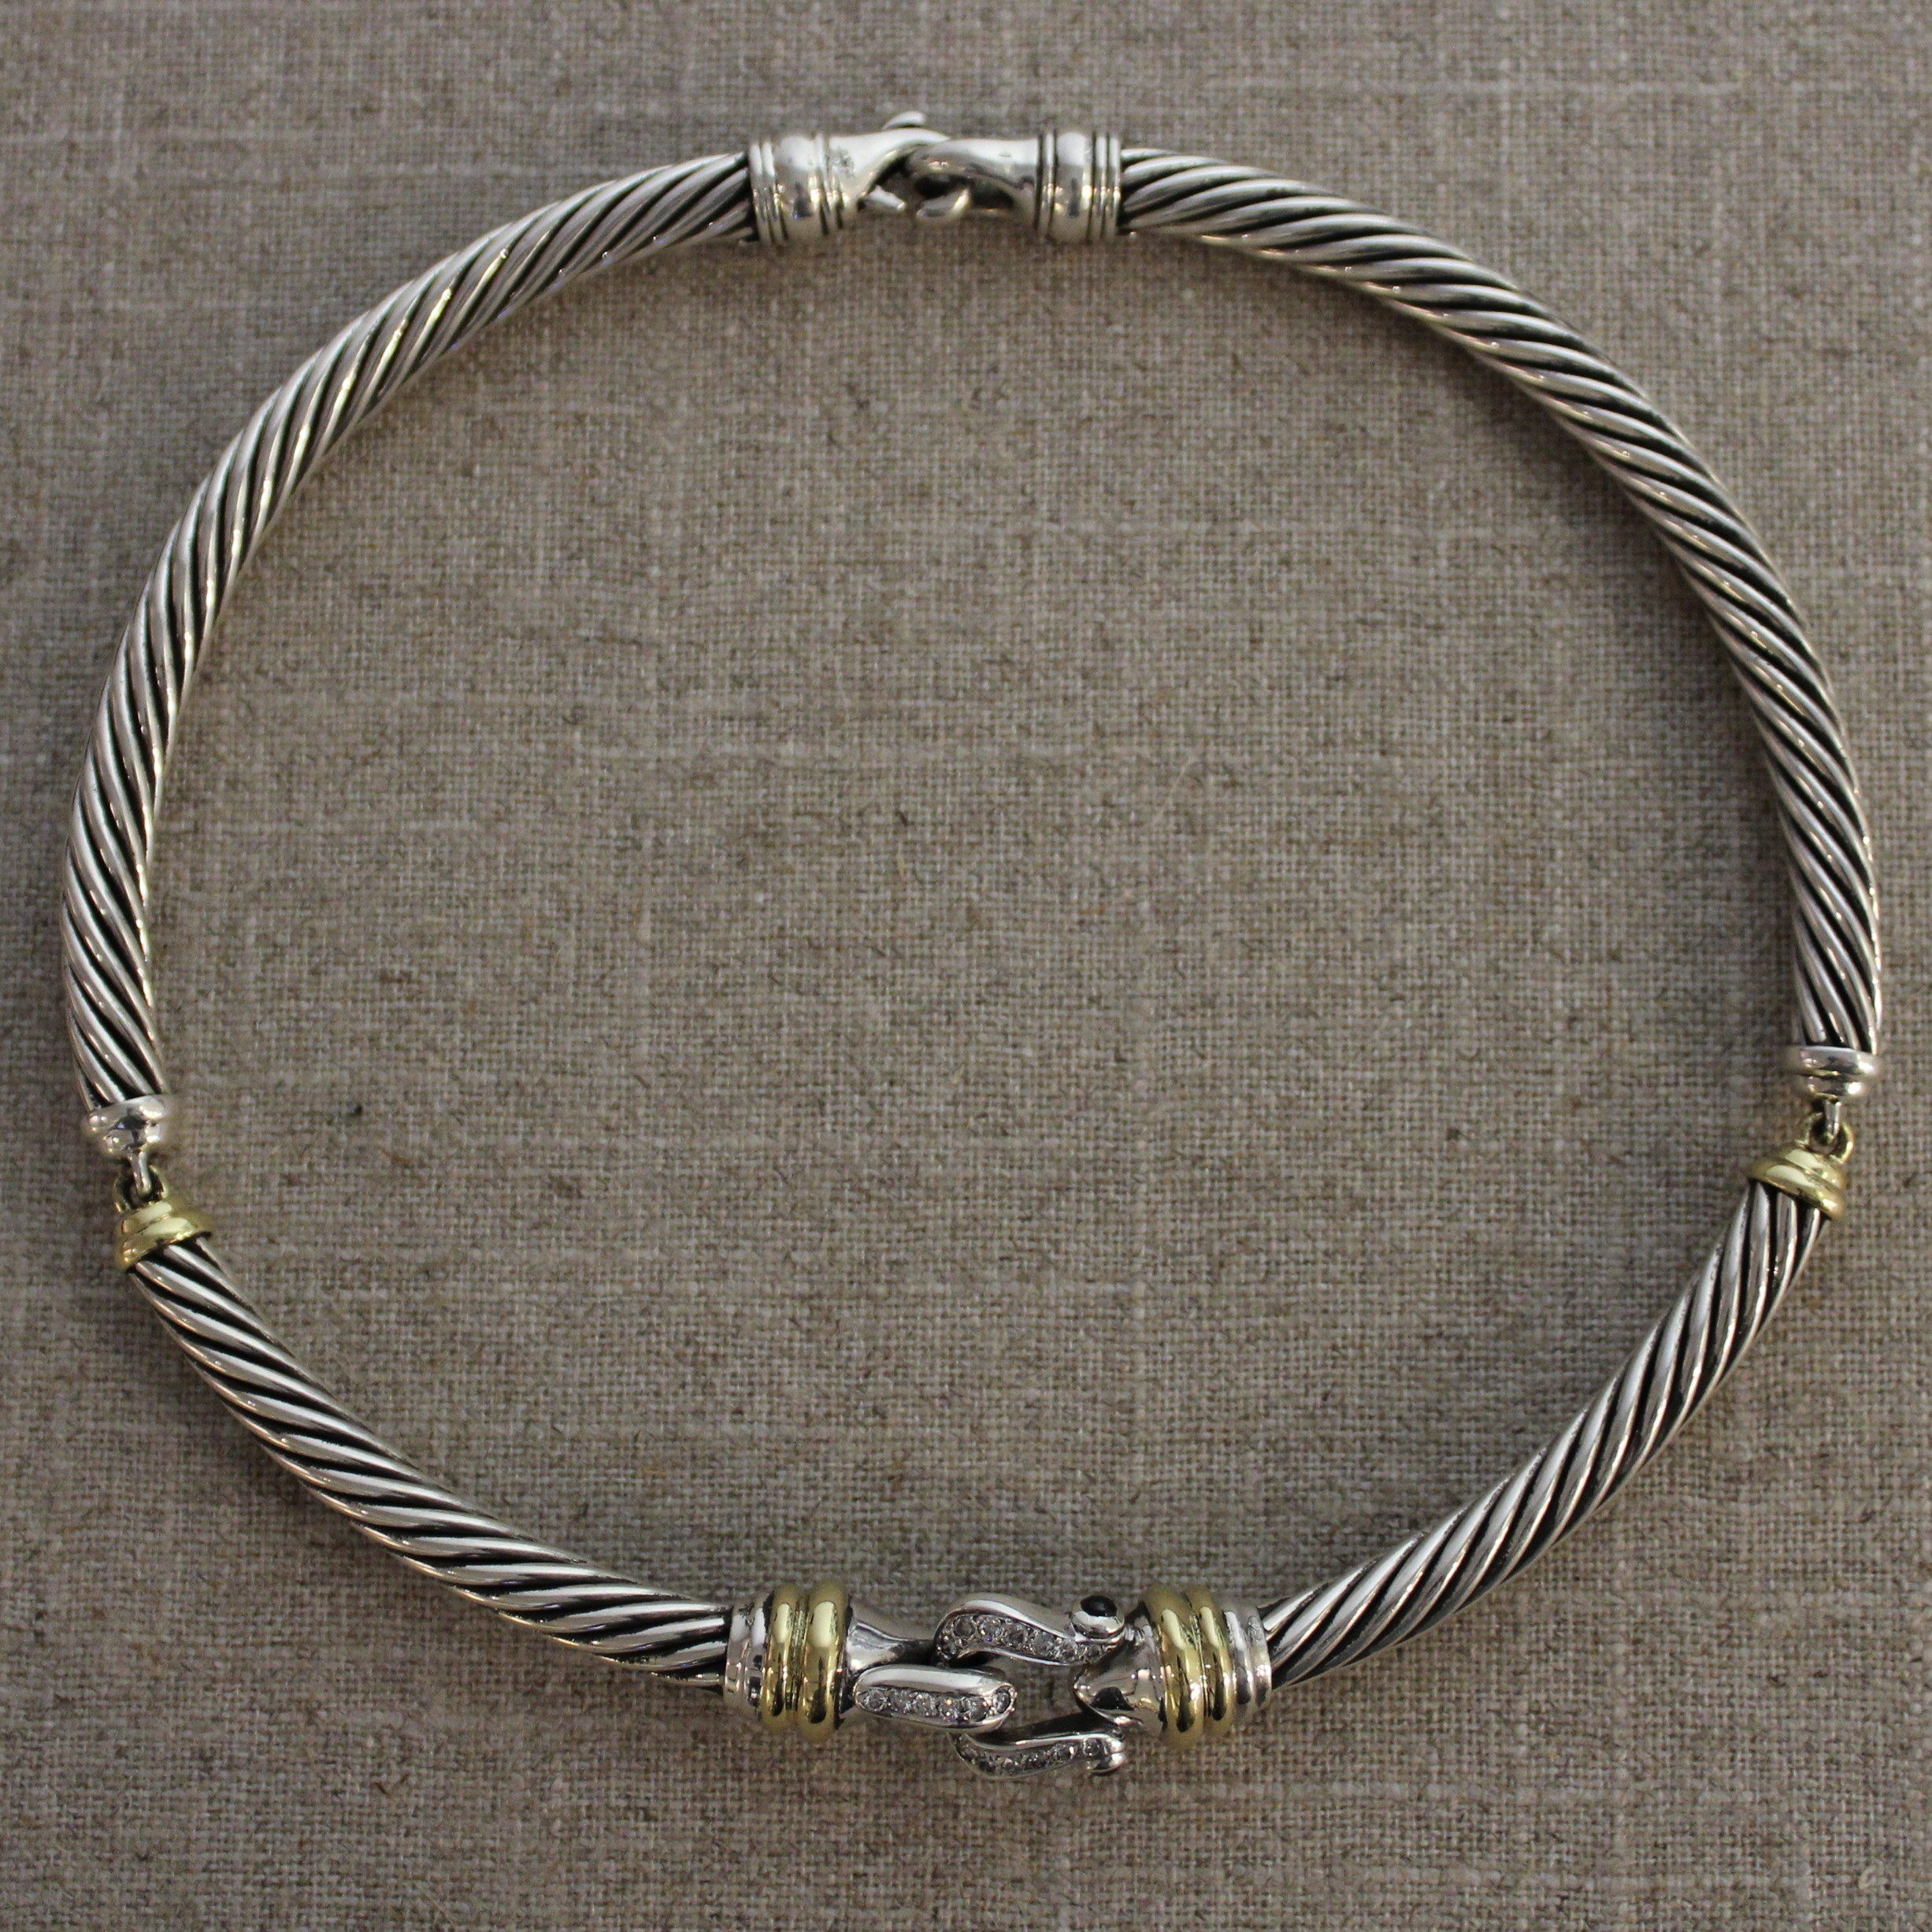 VINTAGE STERLING SILVER AND 18K YELLOW GOLD DAVID YURMAN CABLE BUCKLE NECKLACE